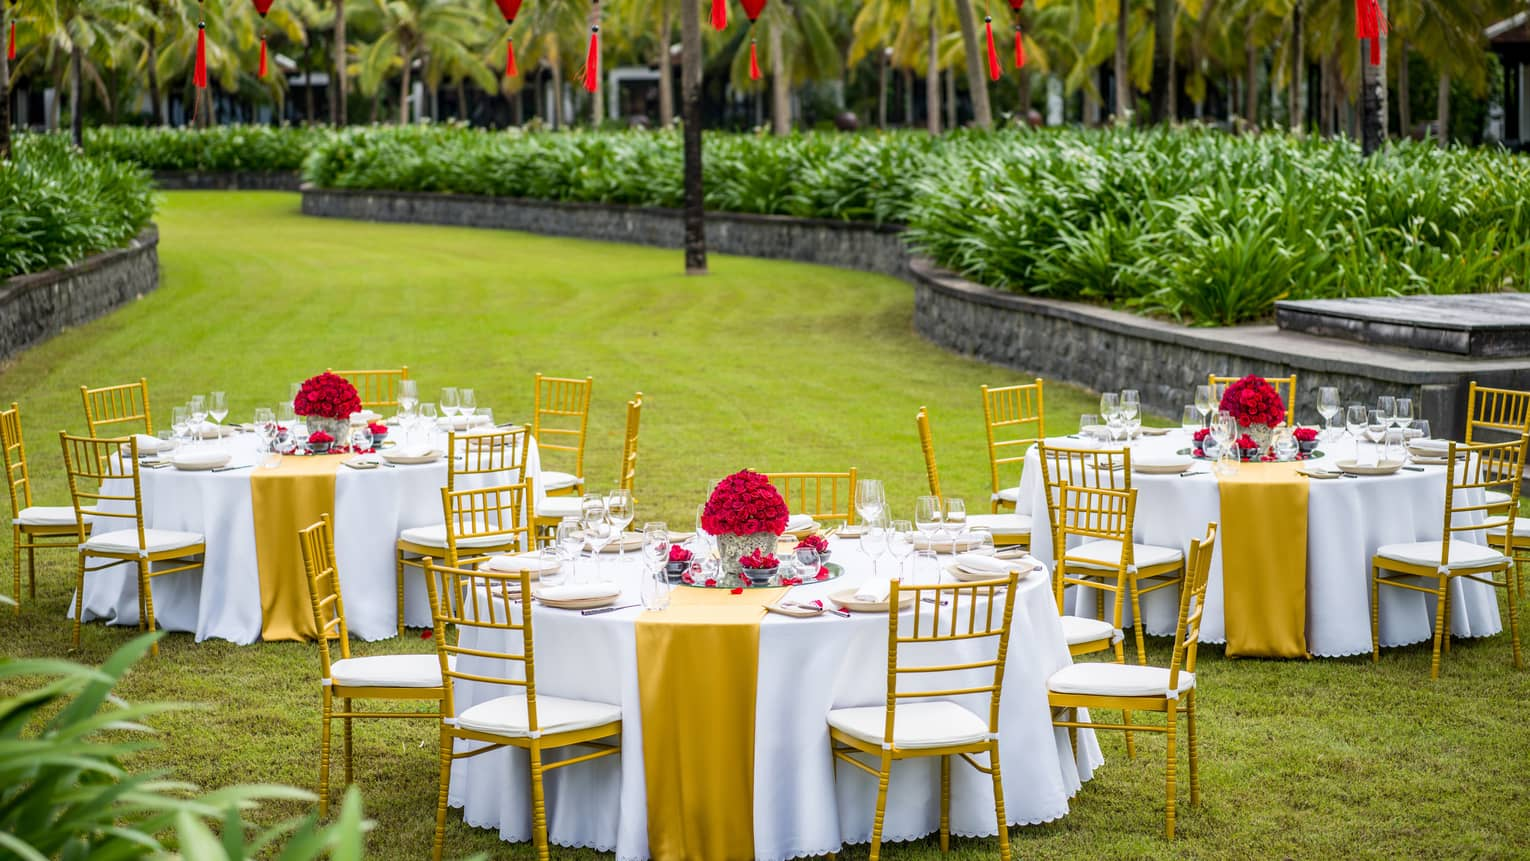 Three tables set out in the lawn with red lanterns for a wedding